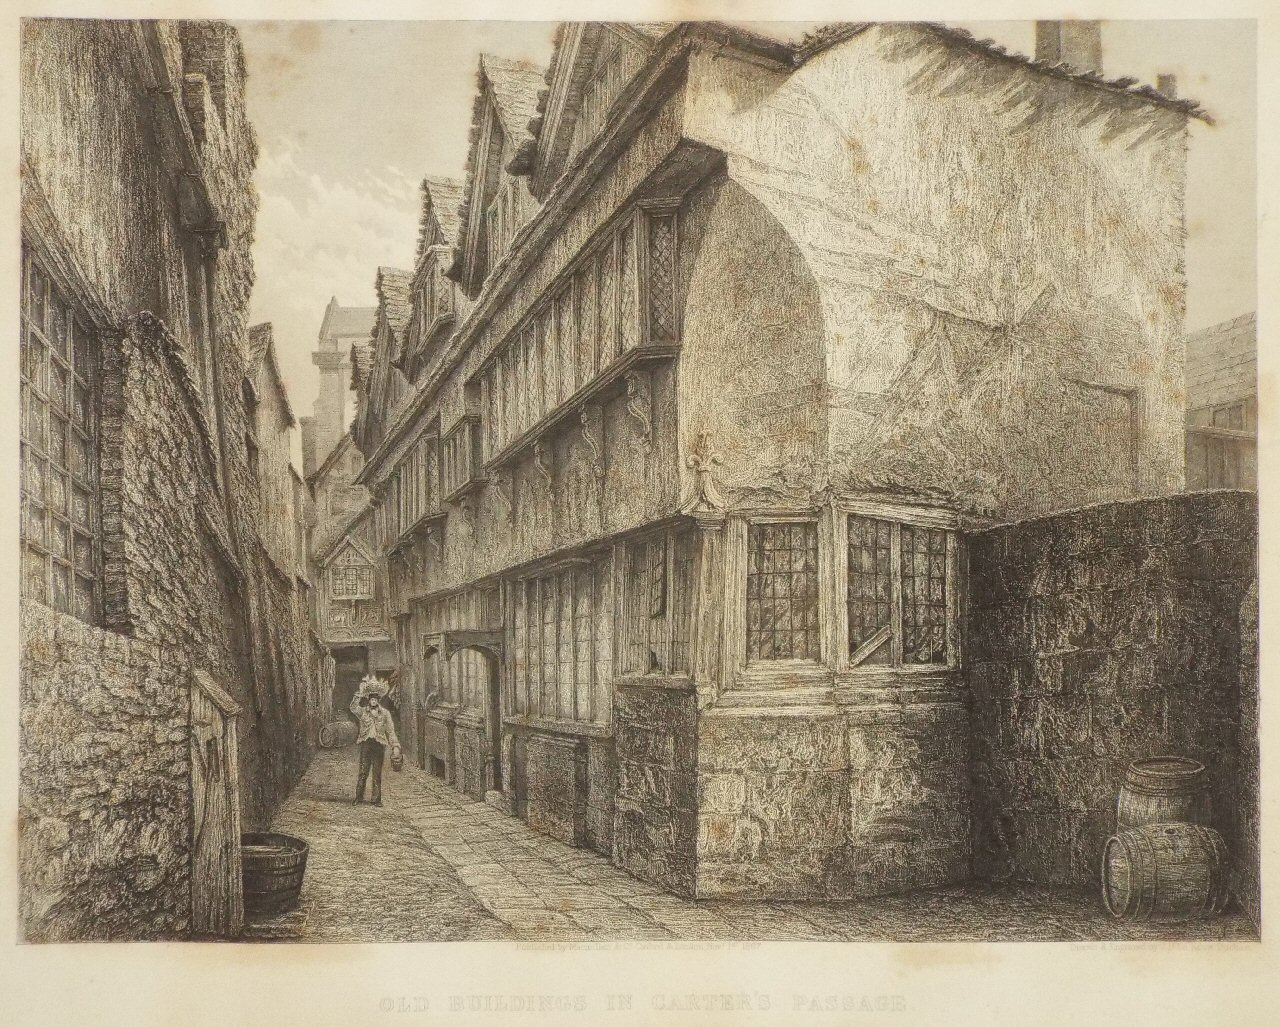 Print - Old Buildings in Carter's Passage. - Le